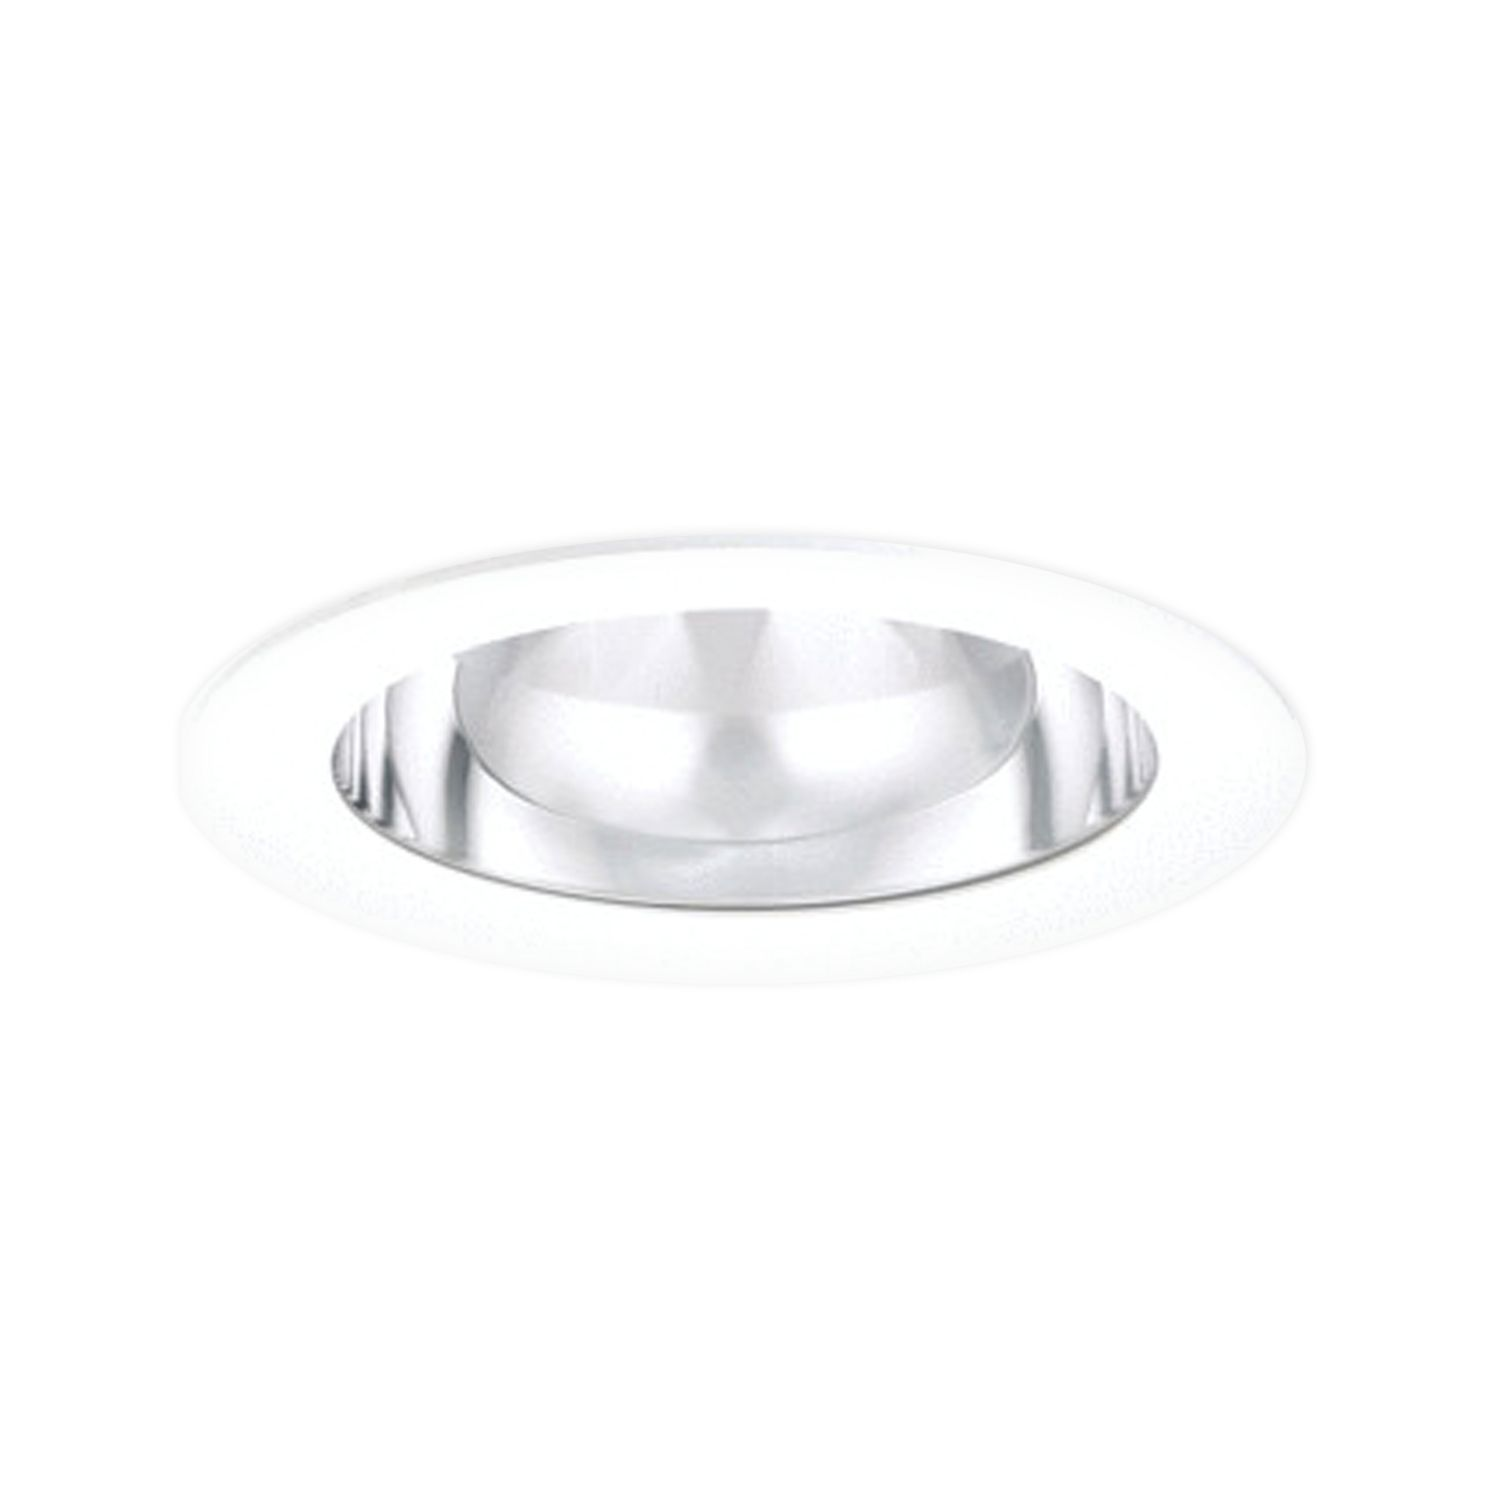 Philips GreenSpace2 DN462B 4000K 1100lm LED11S PSED-VLC-E C PCC WH | Cool White - Dali Dimmable